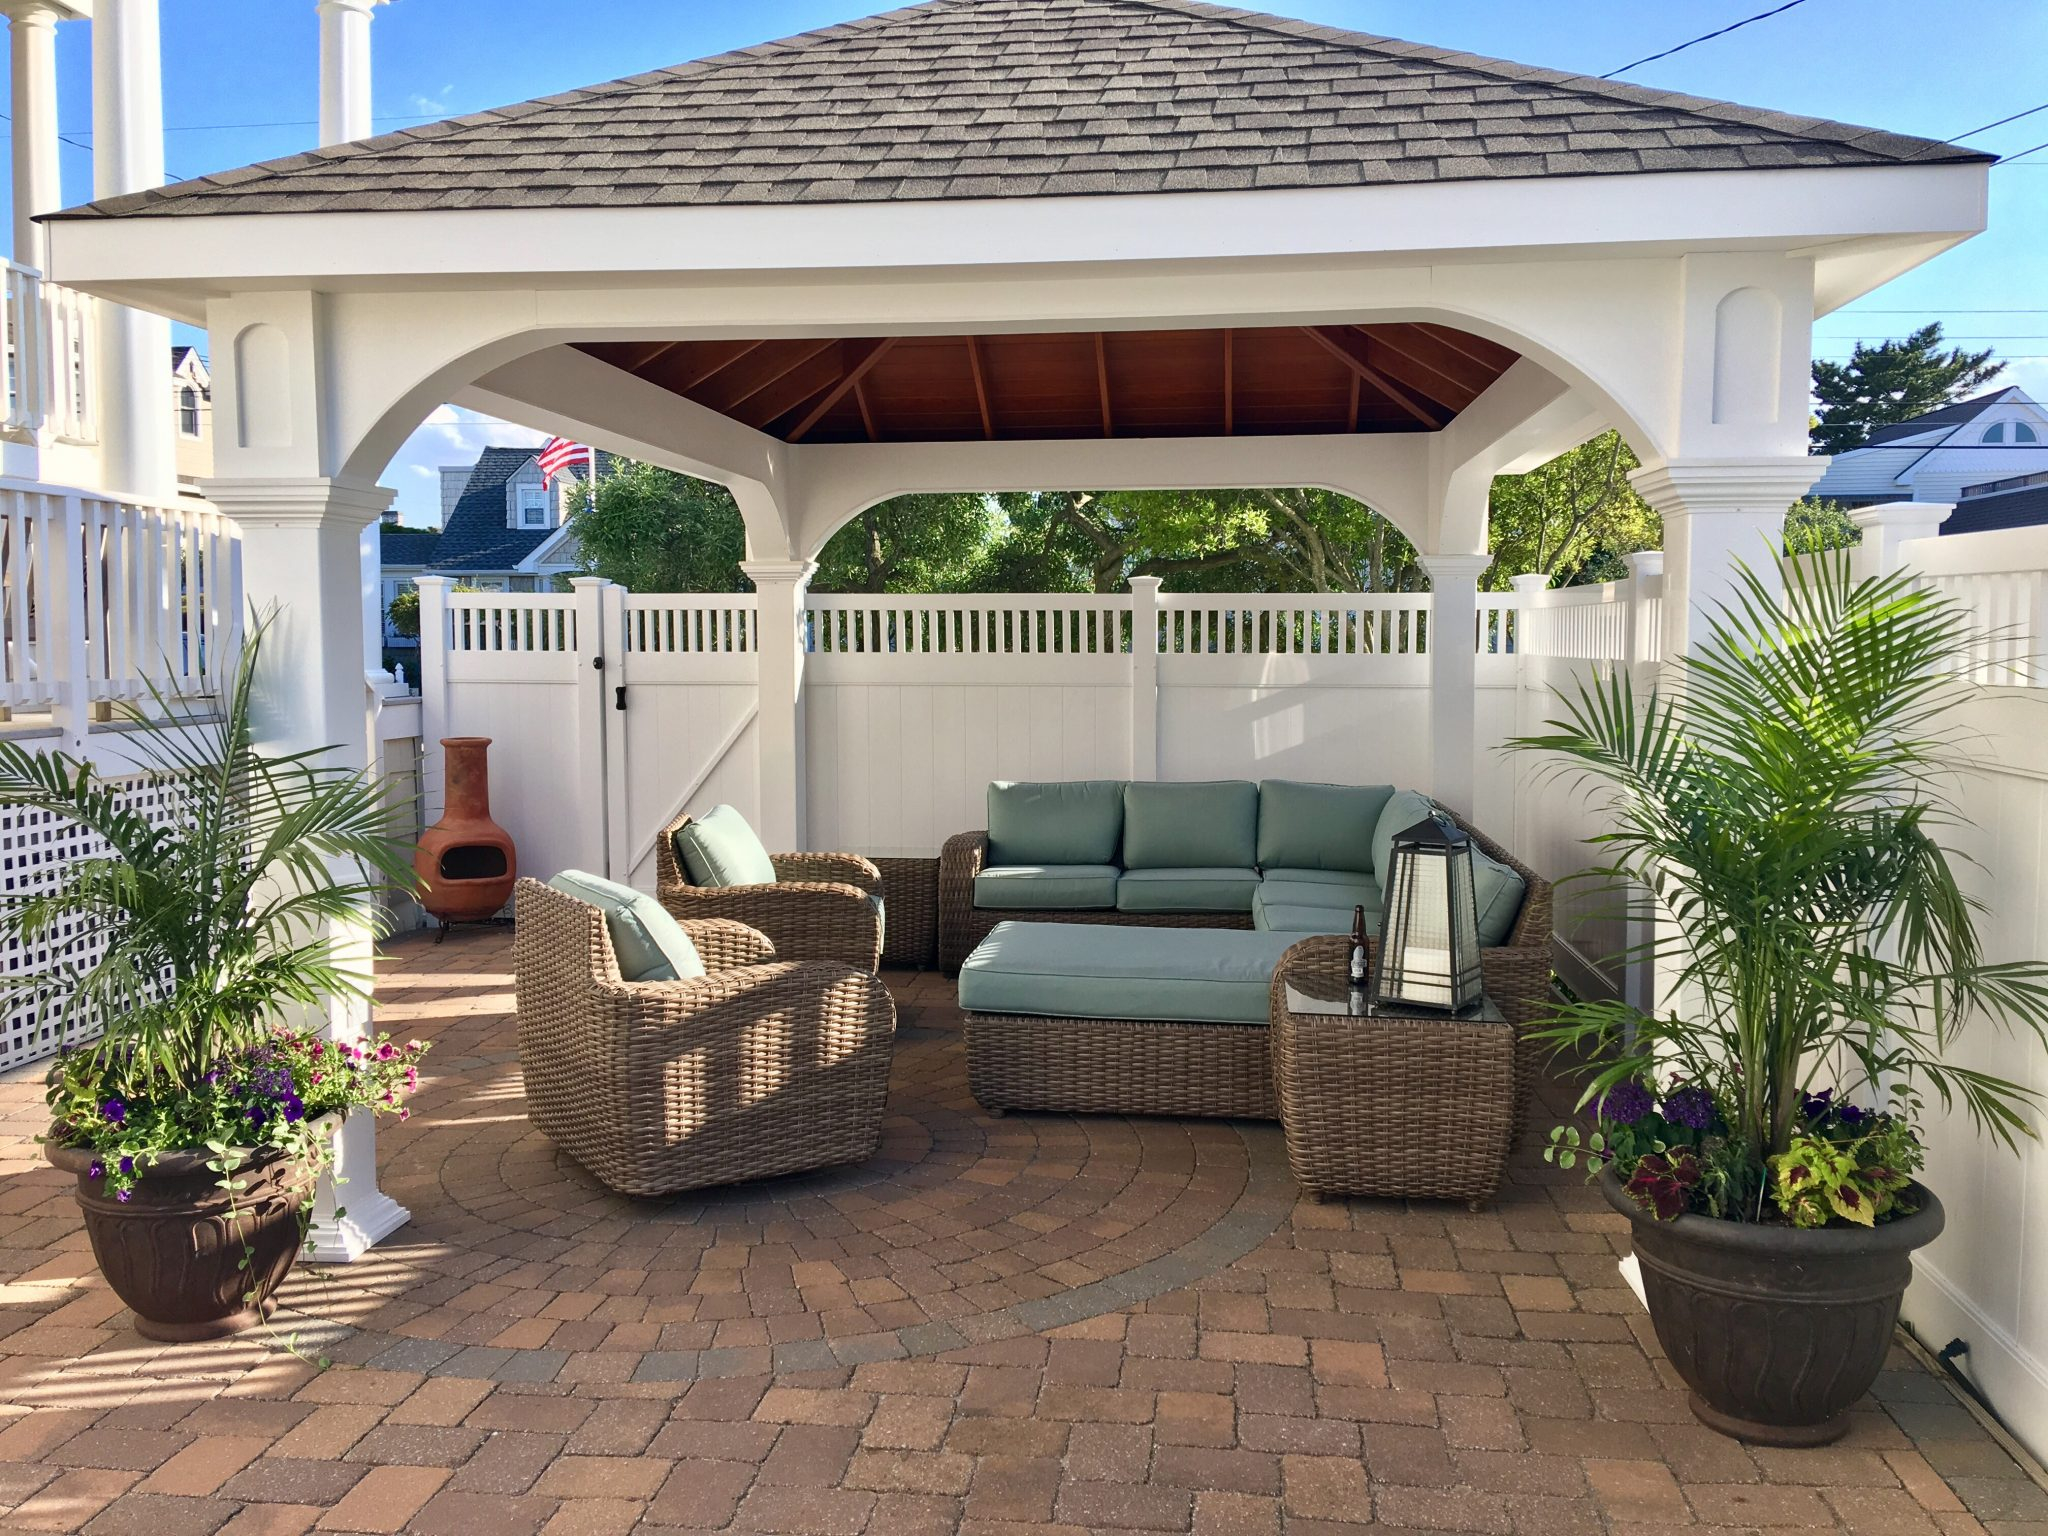 Pavilion Backyard Ideas For Your Outdoor Living Space for Backyard Pavilion Ideas